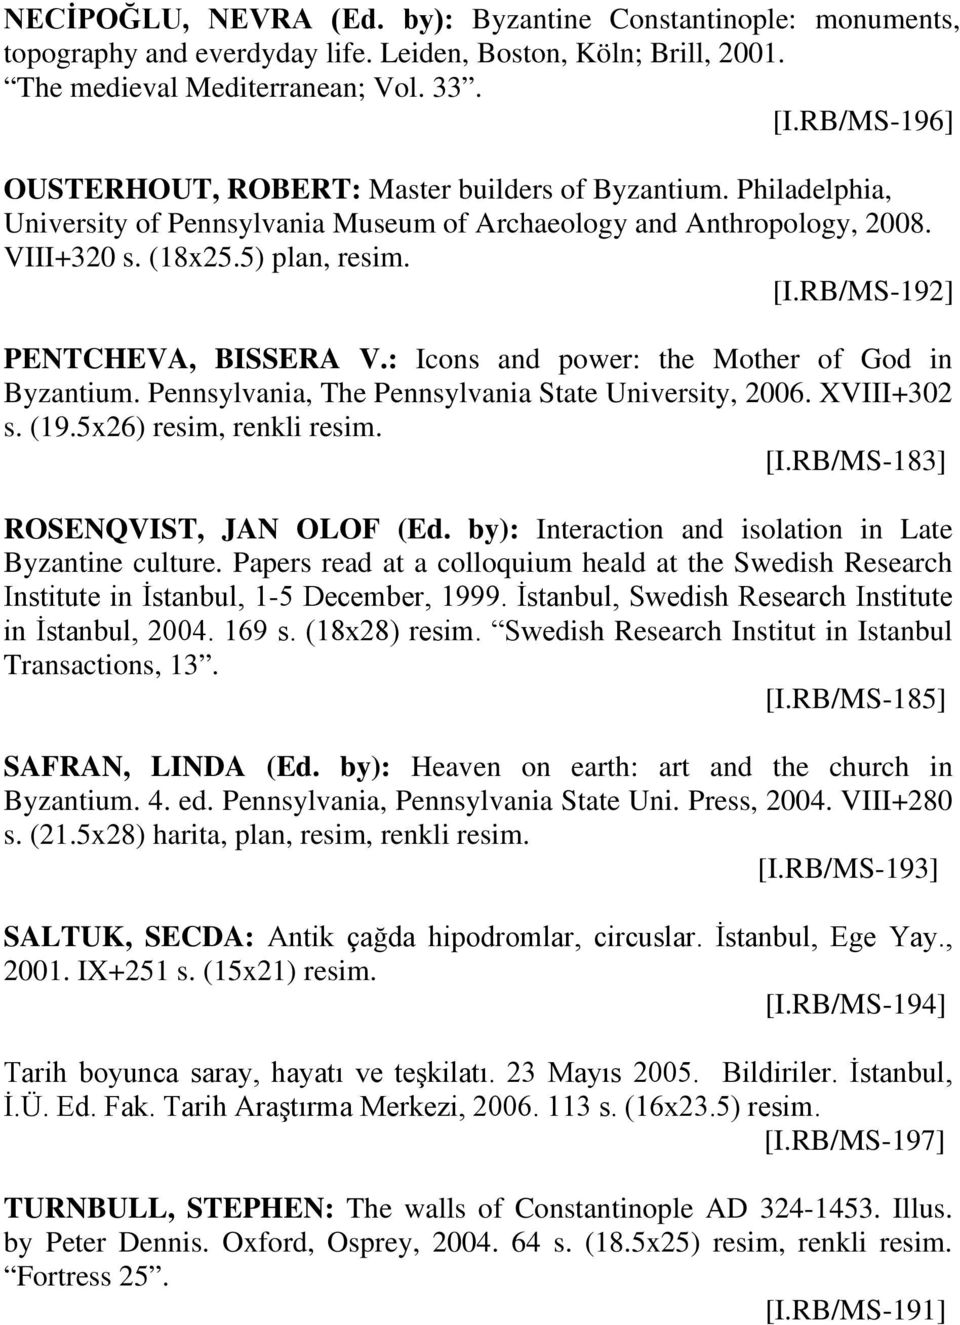 RB/MS-192] PENTCHEVA, BISSERA V.: Icons and power: the Mother of God in Byzantium. Pennsylvania, The Pennsylvania State University, 2006. XVIII+302 s. (19.5x26) resim, renkli resim. [I.